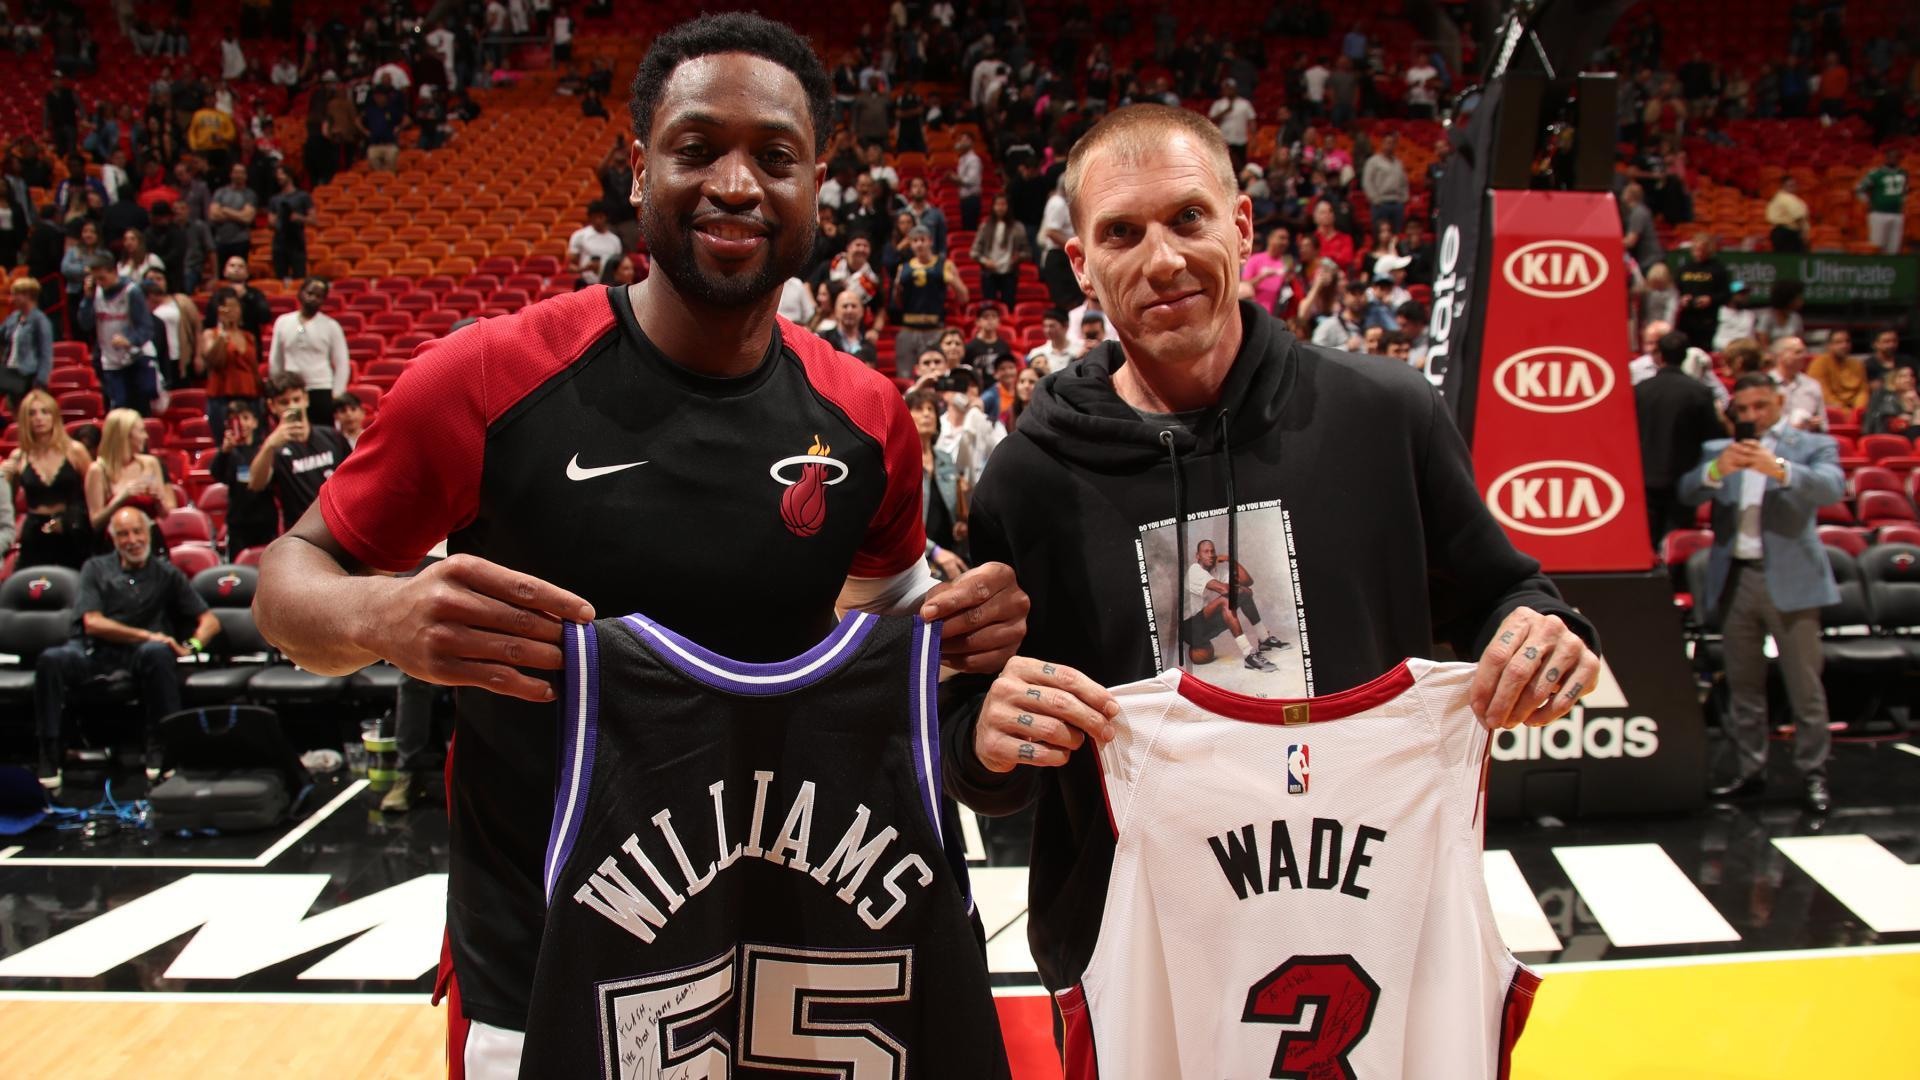 Jason Williams and Dwyane Wade